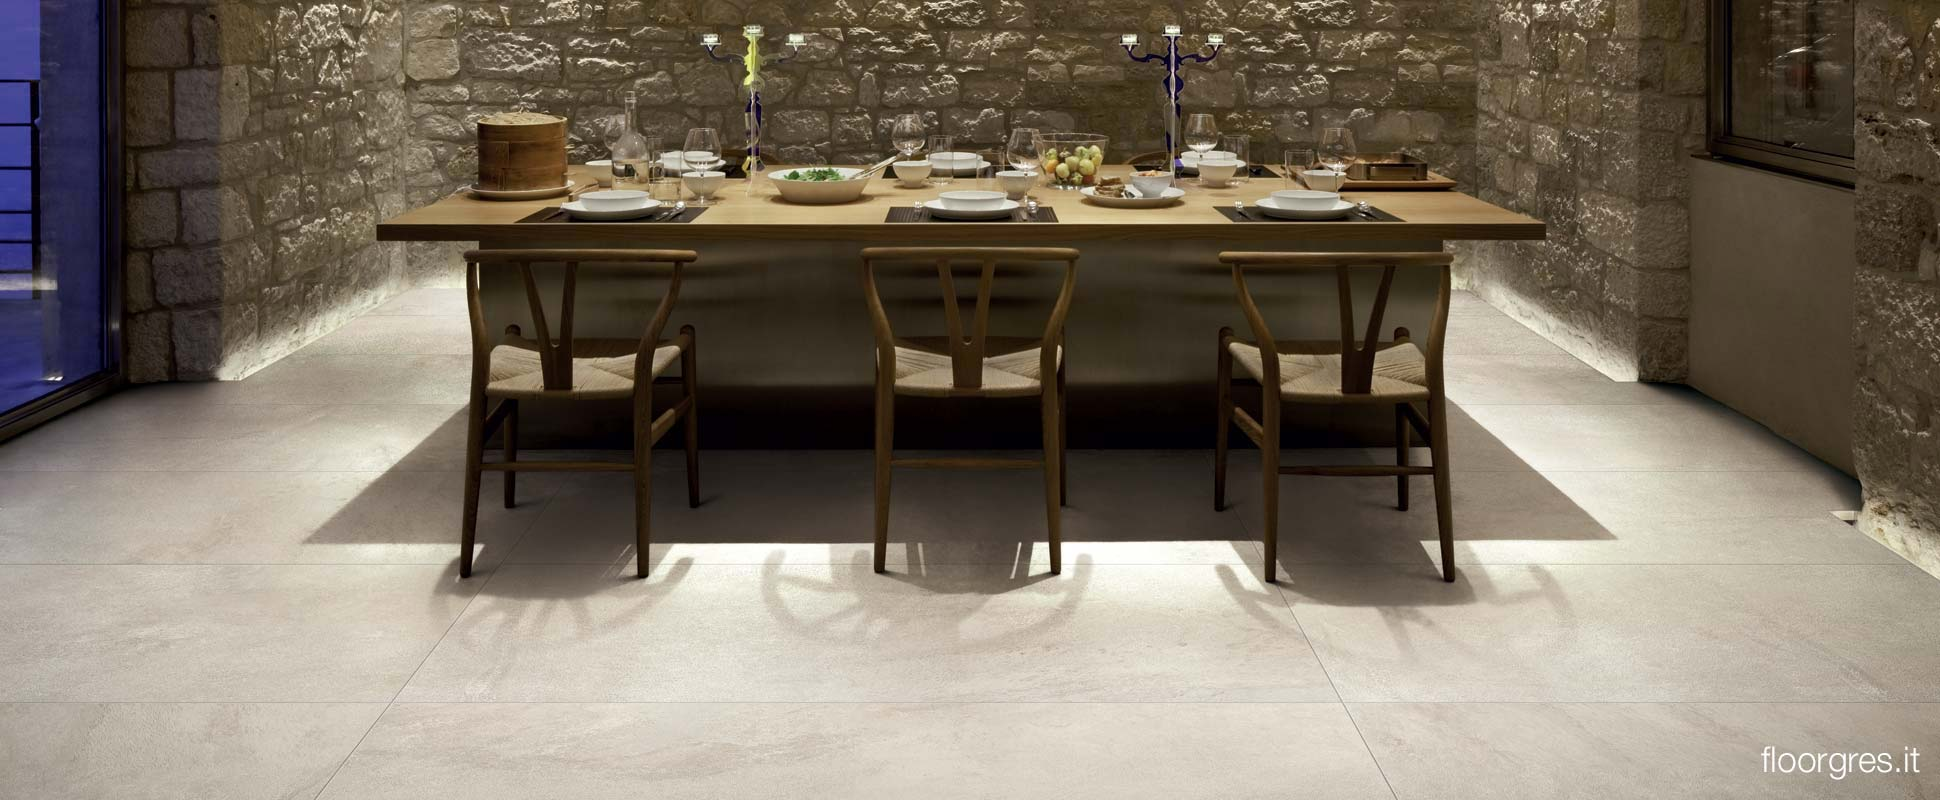 Styletech by floor gres porcelain tiles ss tile and stone toronto floorgres dailygadgetfo Image collections